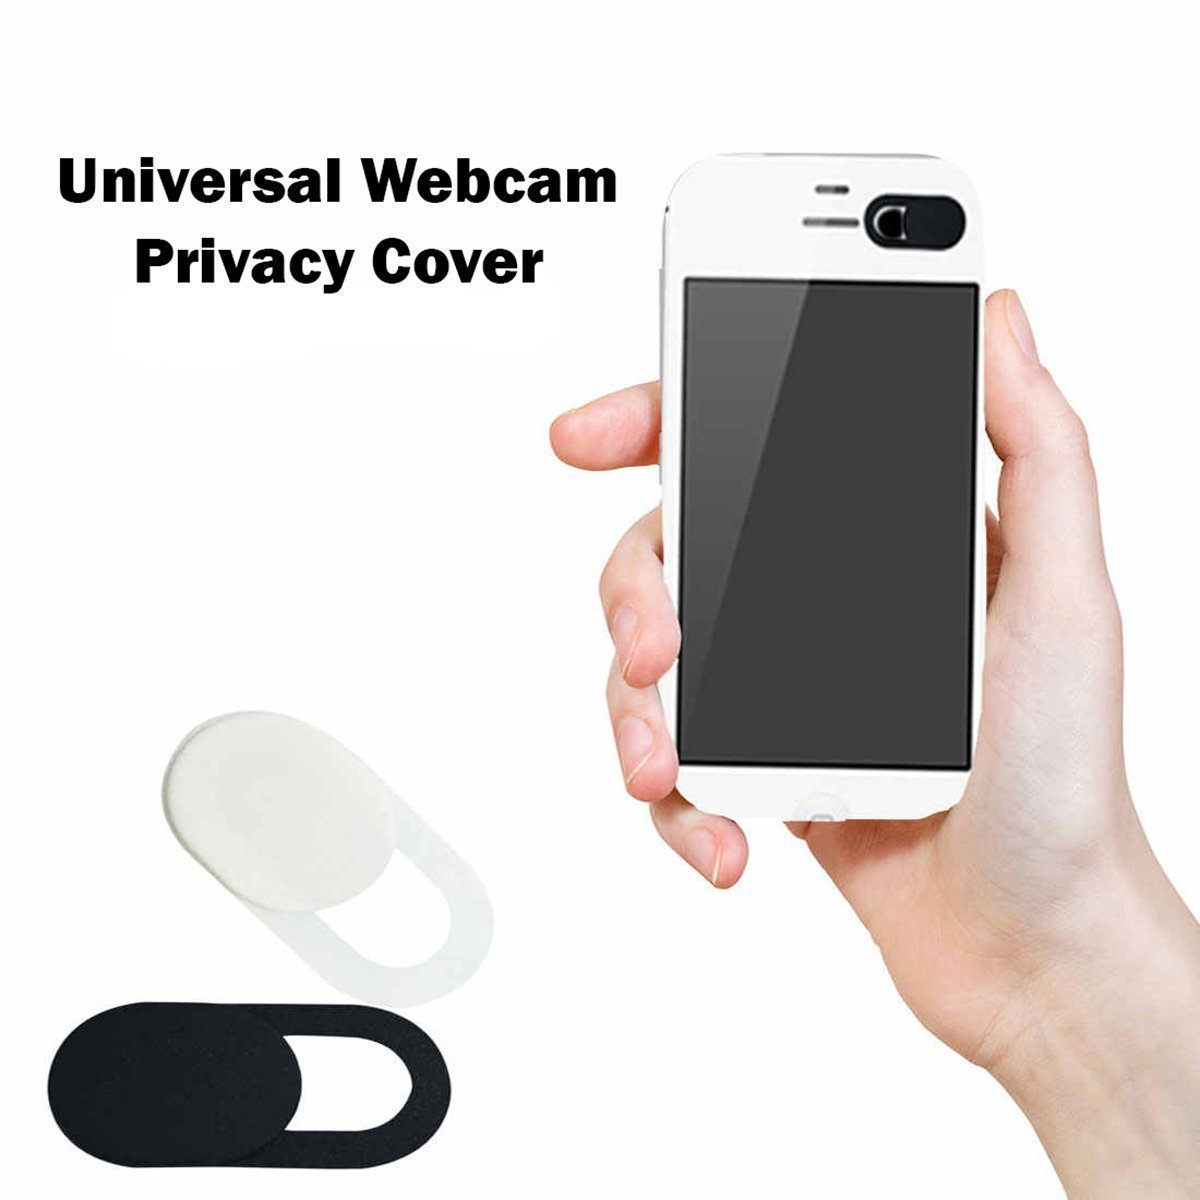 Universal Webcam Privacy Cover (3 PCS)